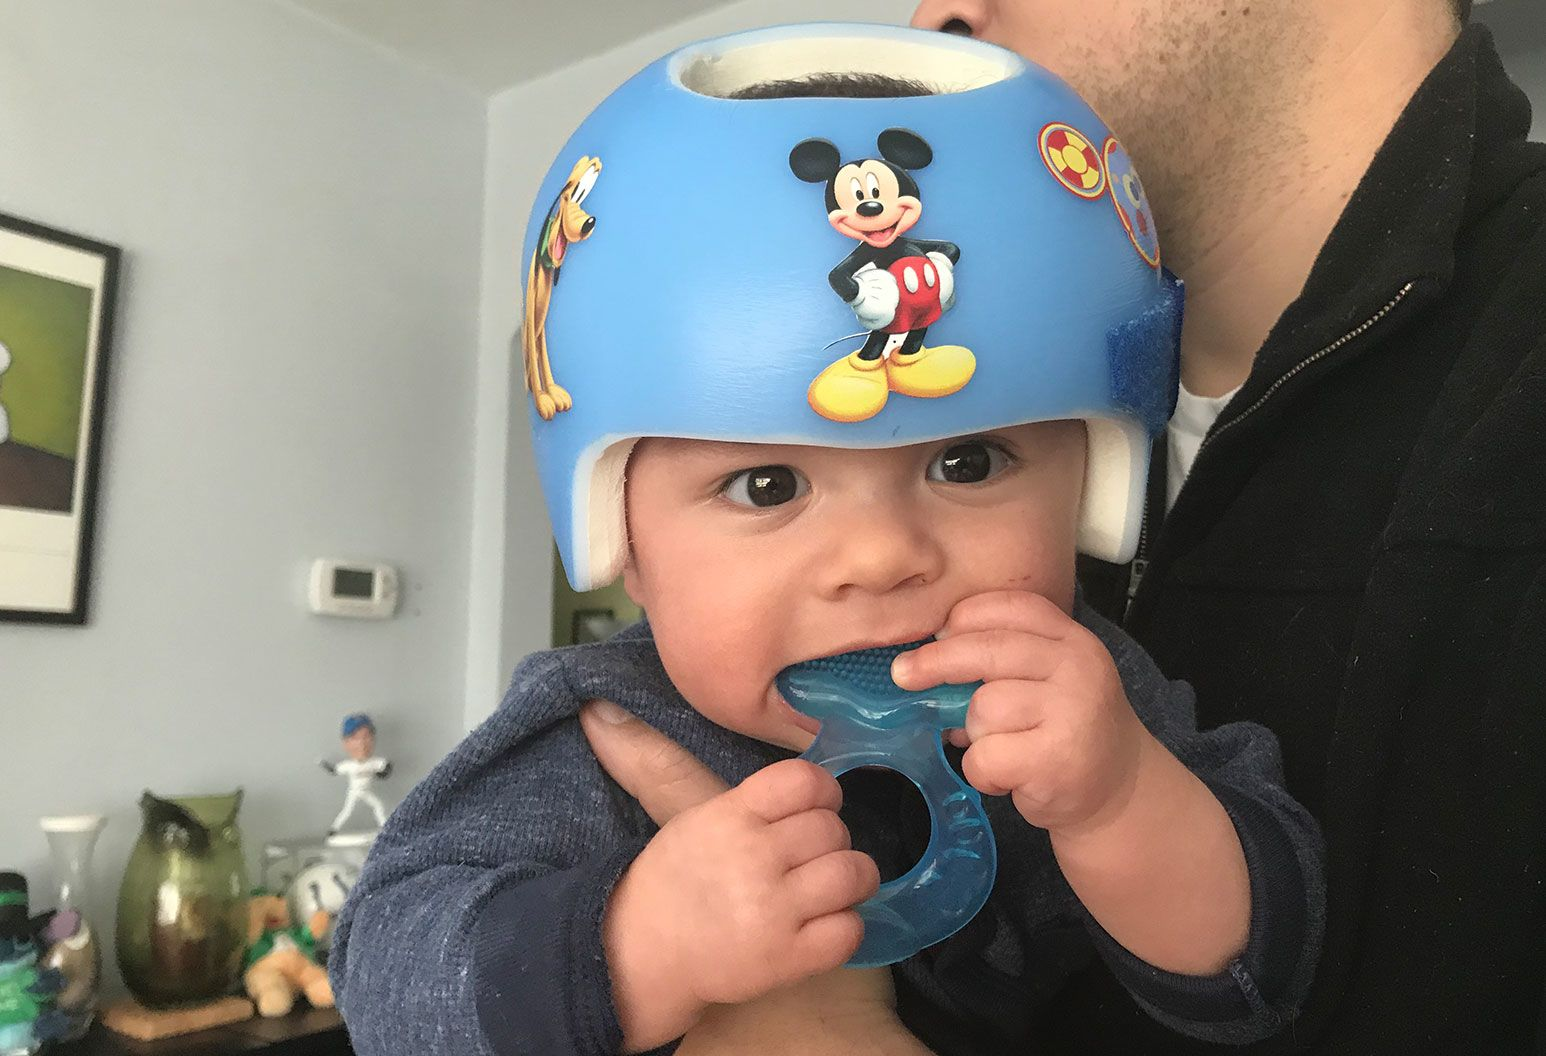 A baby wearing a blue helmet with Disney character stickers on it chews on a teething toy while being held by an older man.